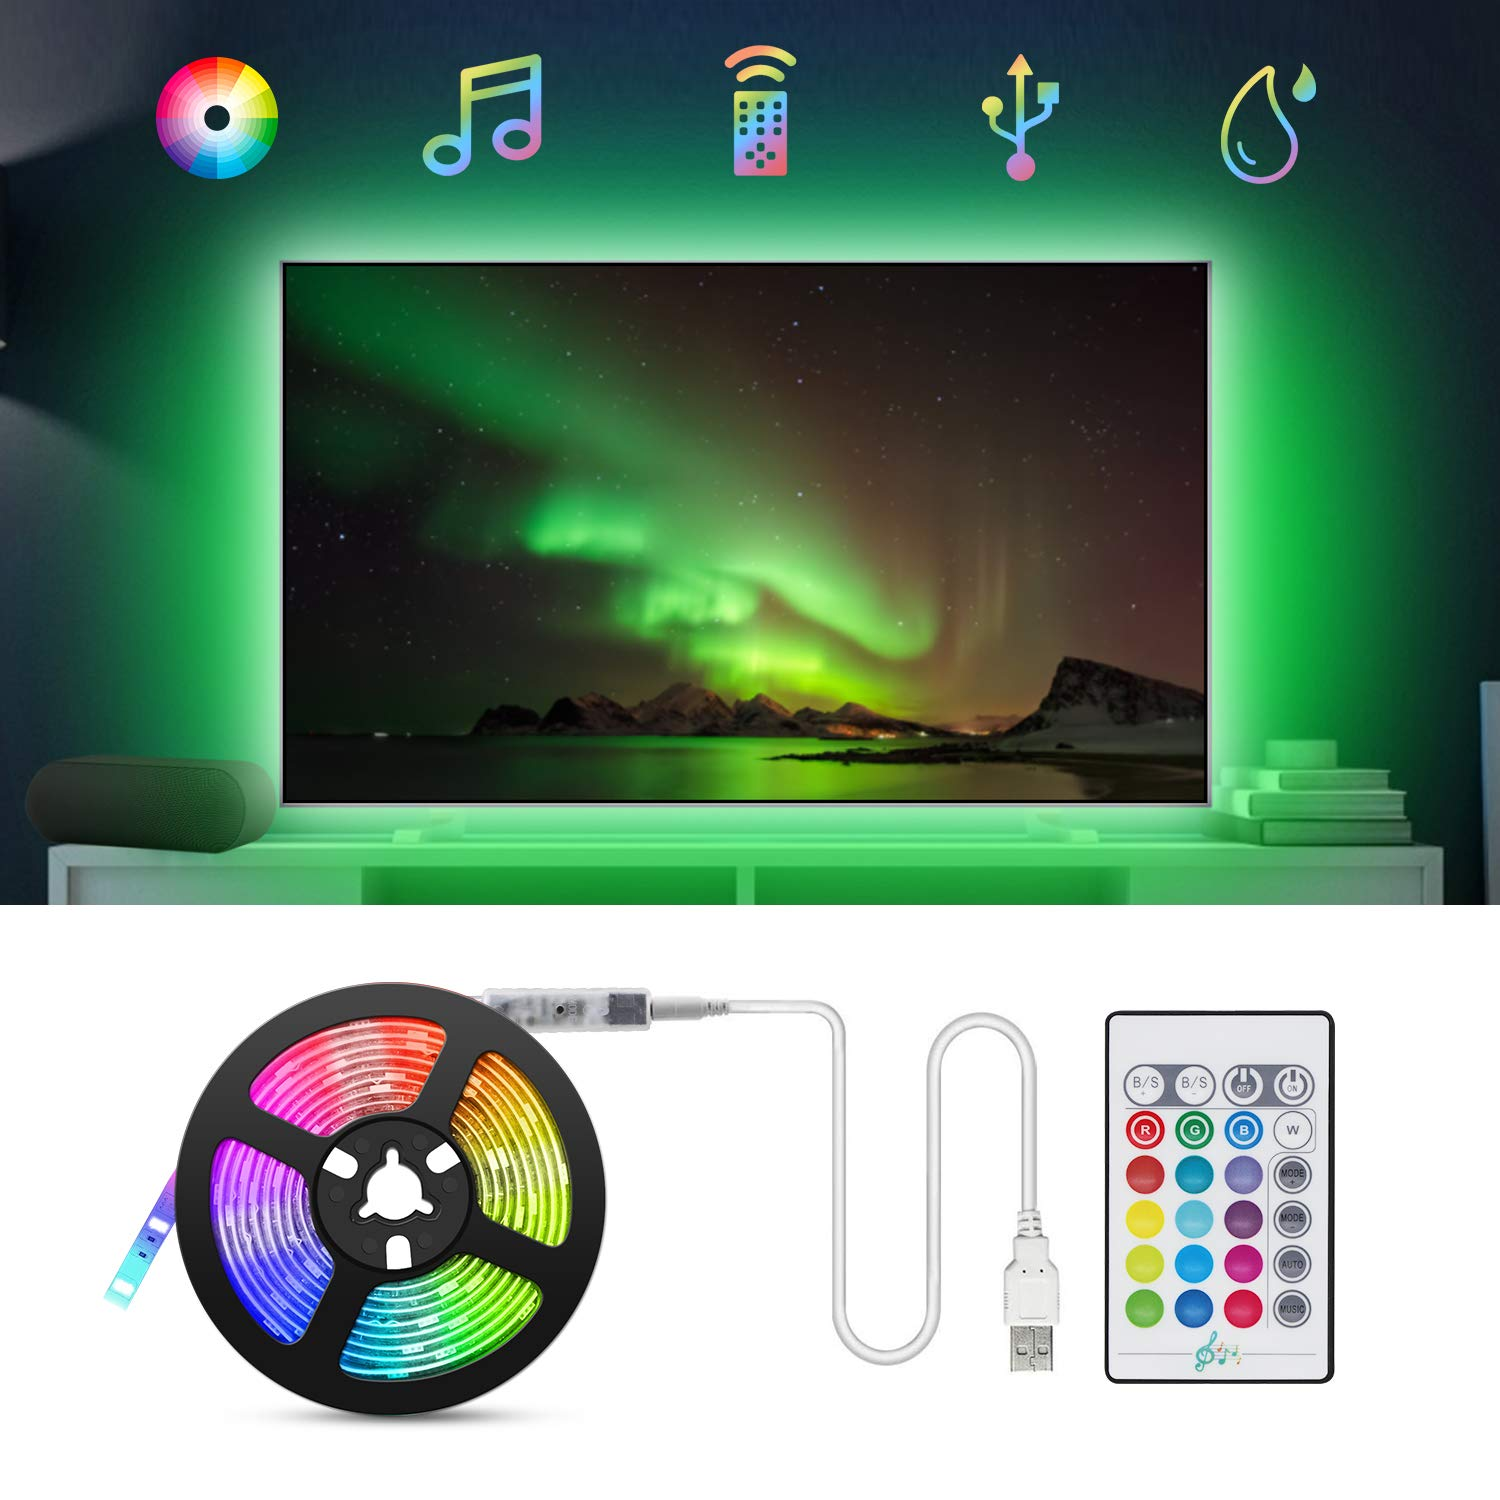 Tiras LED TV 2.2M, TASMOR Tira LED USB RGB 5050 Sincronización de Música, Retroiluminación TV Impermeable con Control Remoto, Luz LED TV Gaming con Autoadhesiva 3M para 30-60 Inchi TV/PC